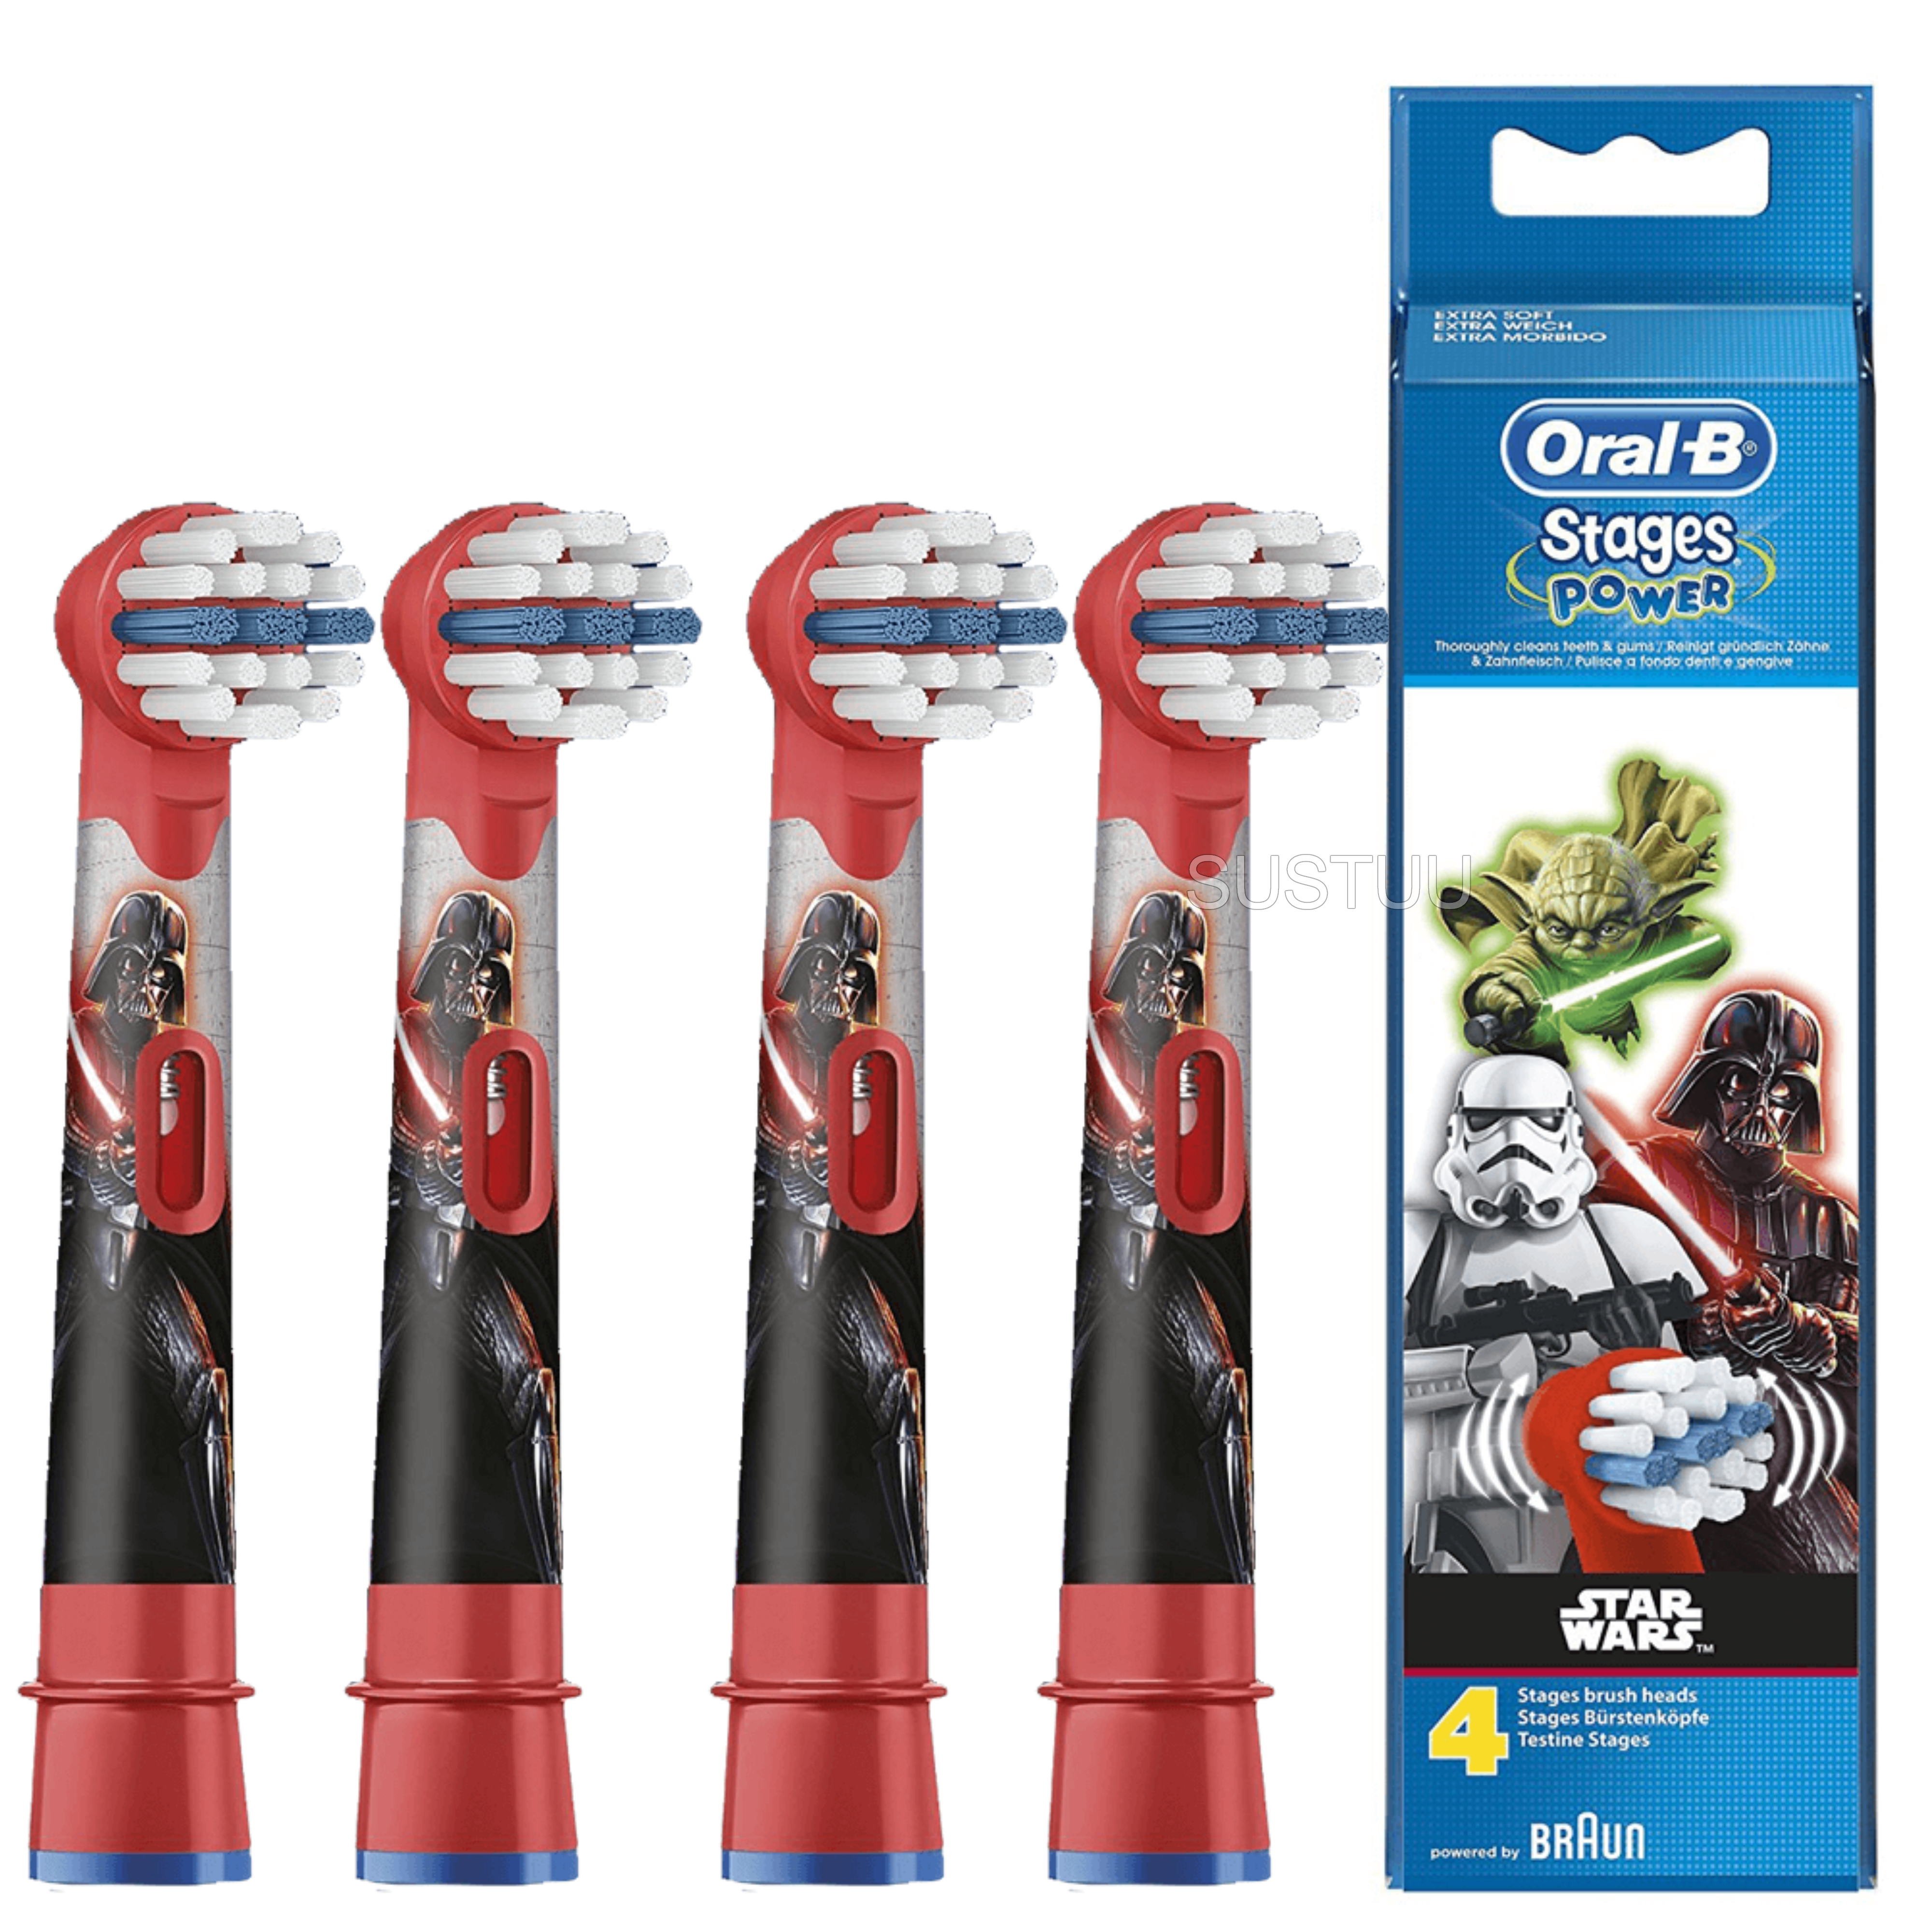 Oral-B Stages Power Replacement Toothbrush Heads (Pack of 4) | Kids Star Wars | NEW